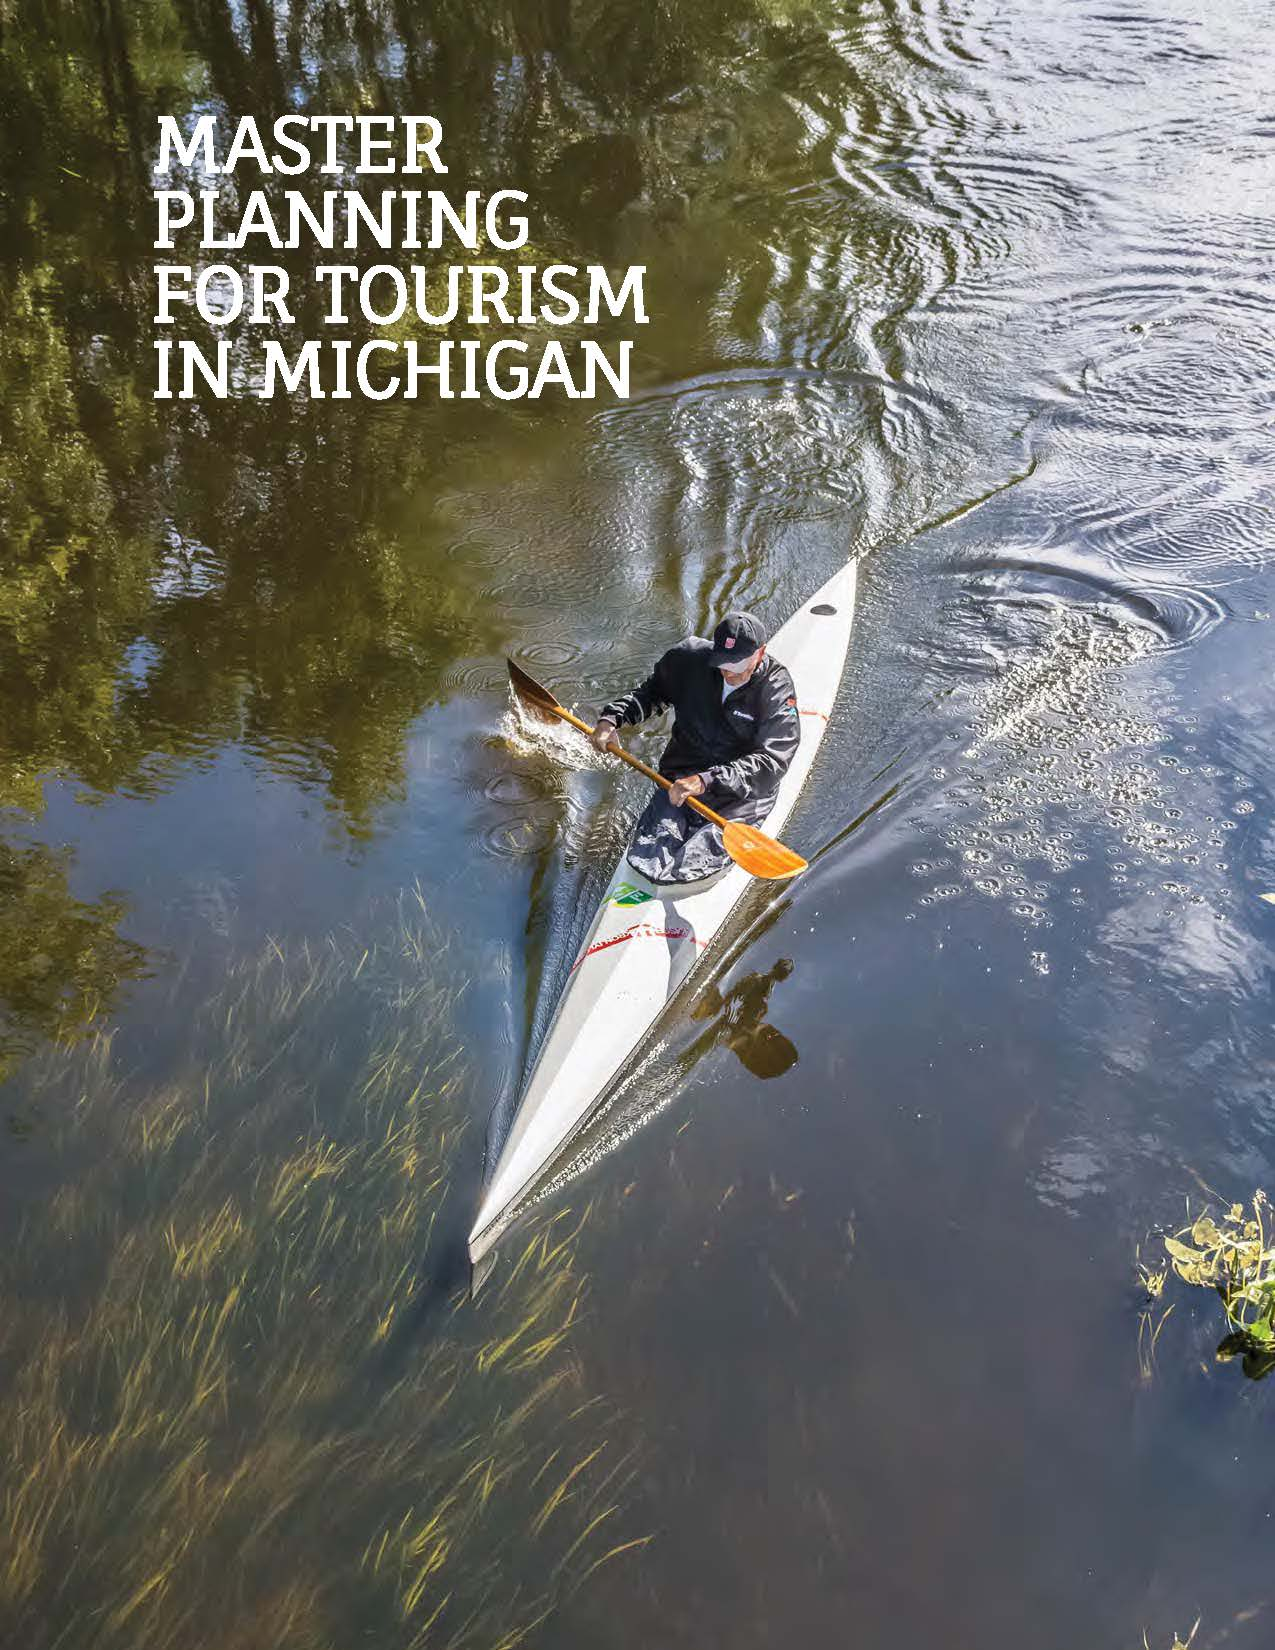 Master Planning for Tourism in Michigan